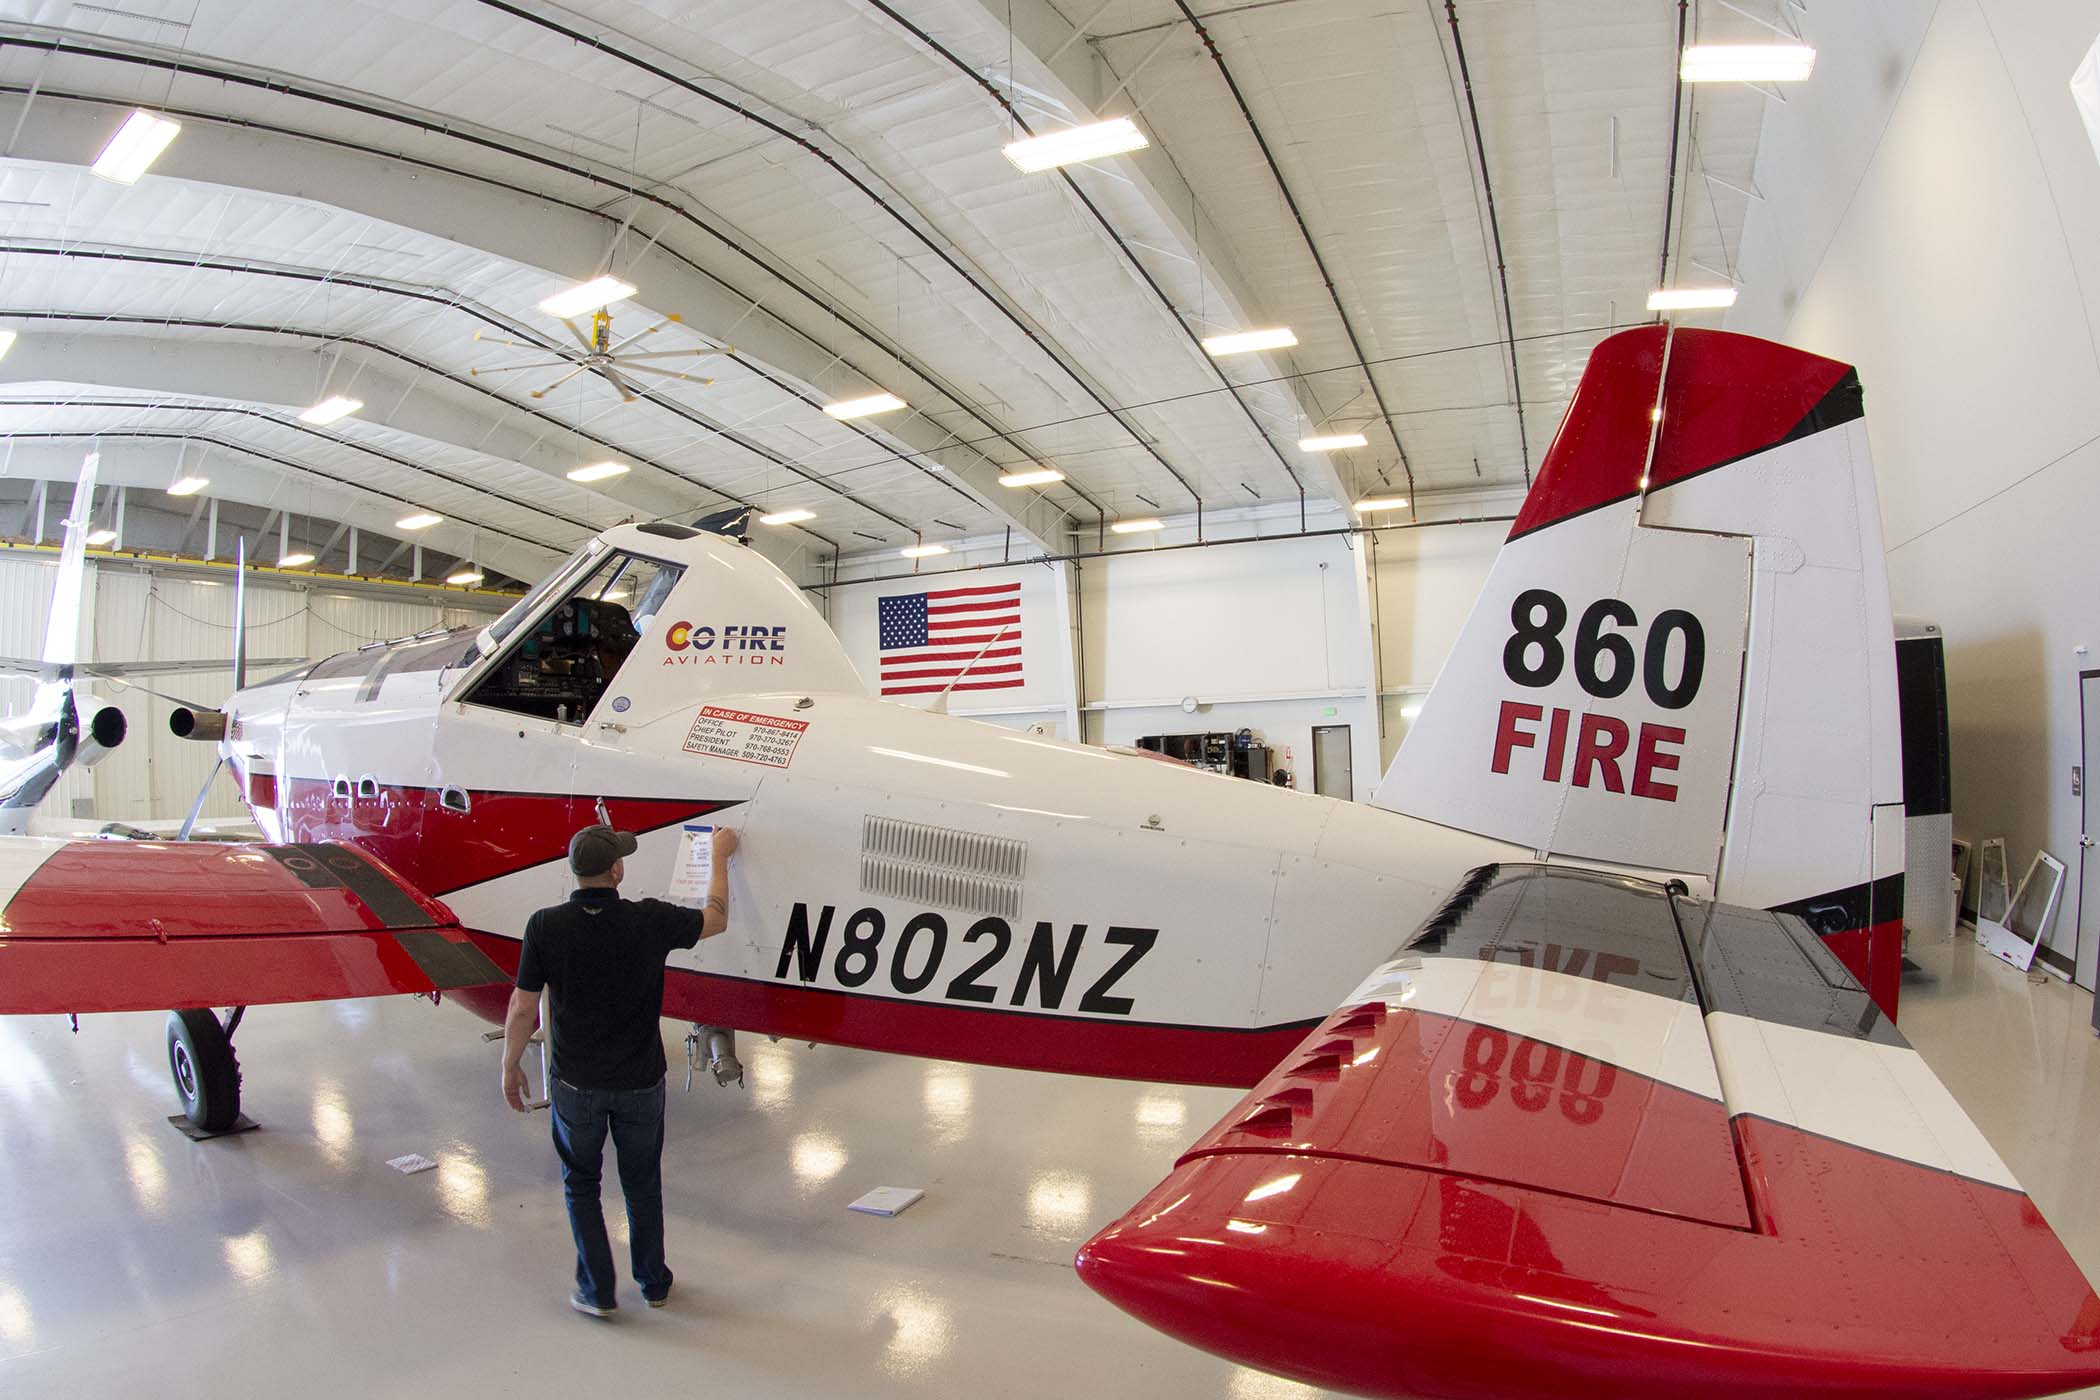 ASU modifies CO Fire AT-802 for first fixed-wing NVG firefighting operations